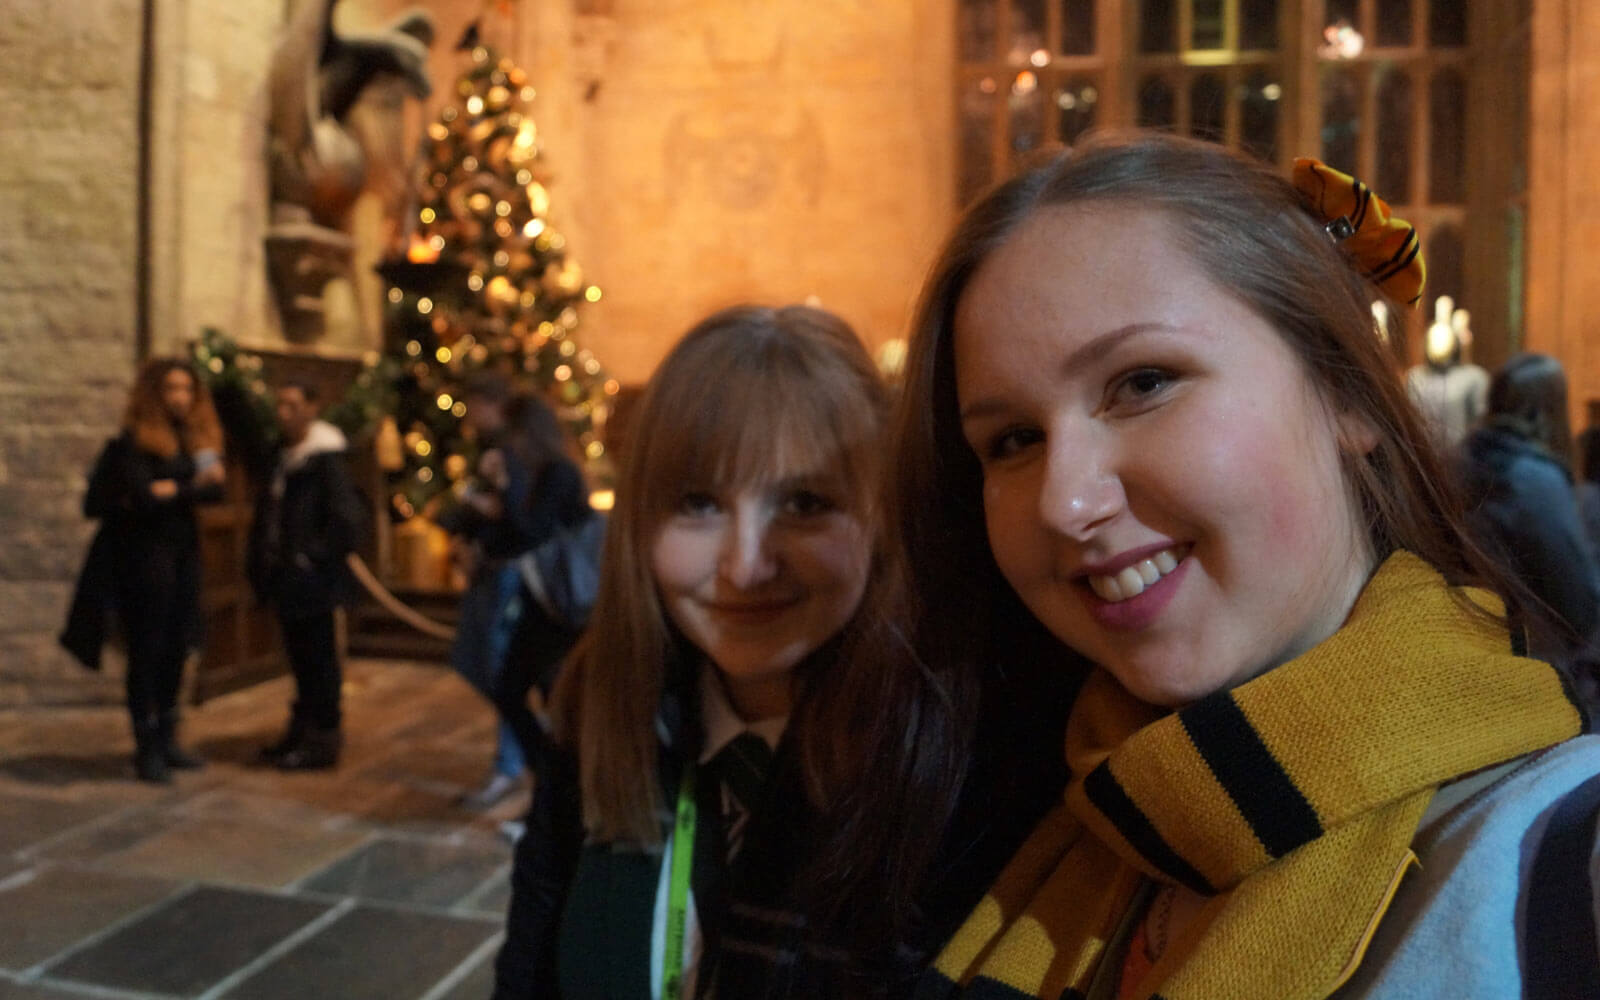 Theres und ihre Freundin bei der Harry Potter Studio-Tour in London